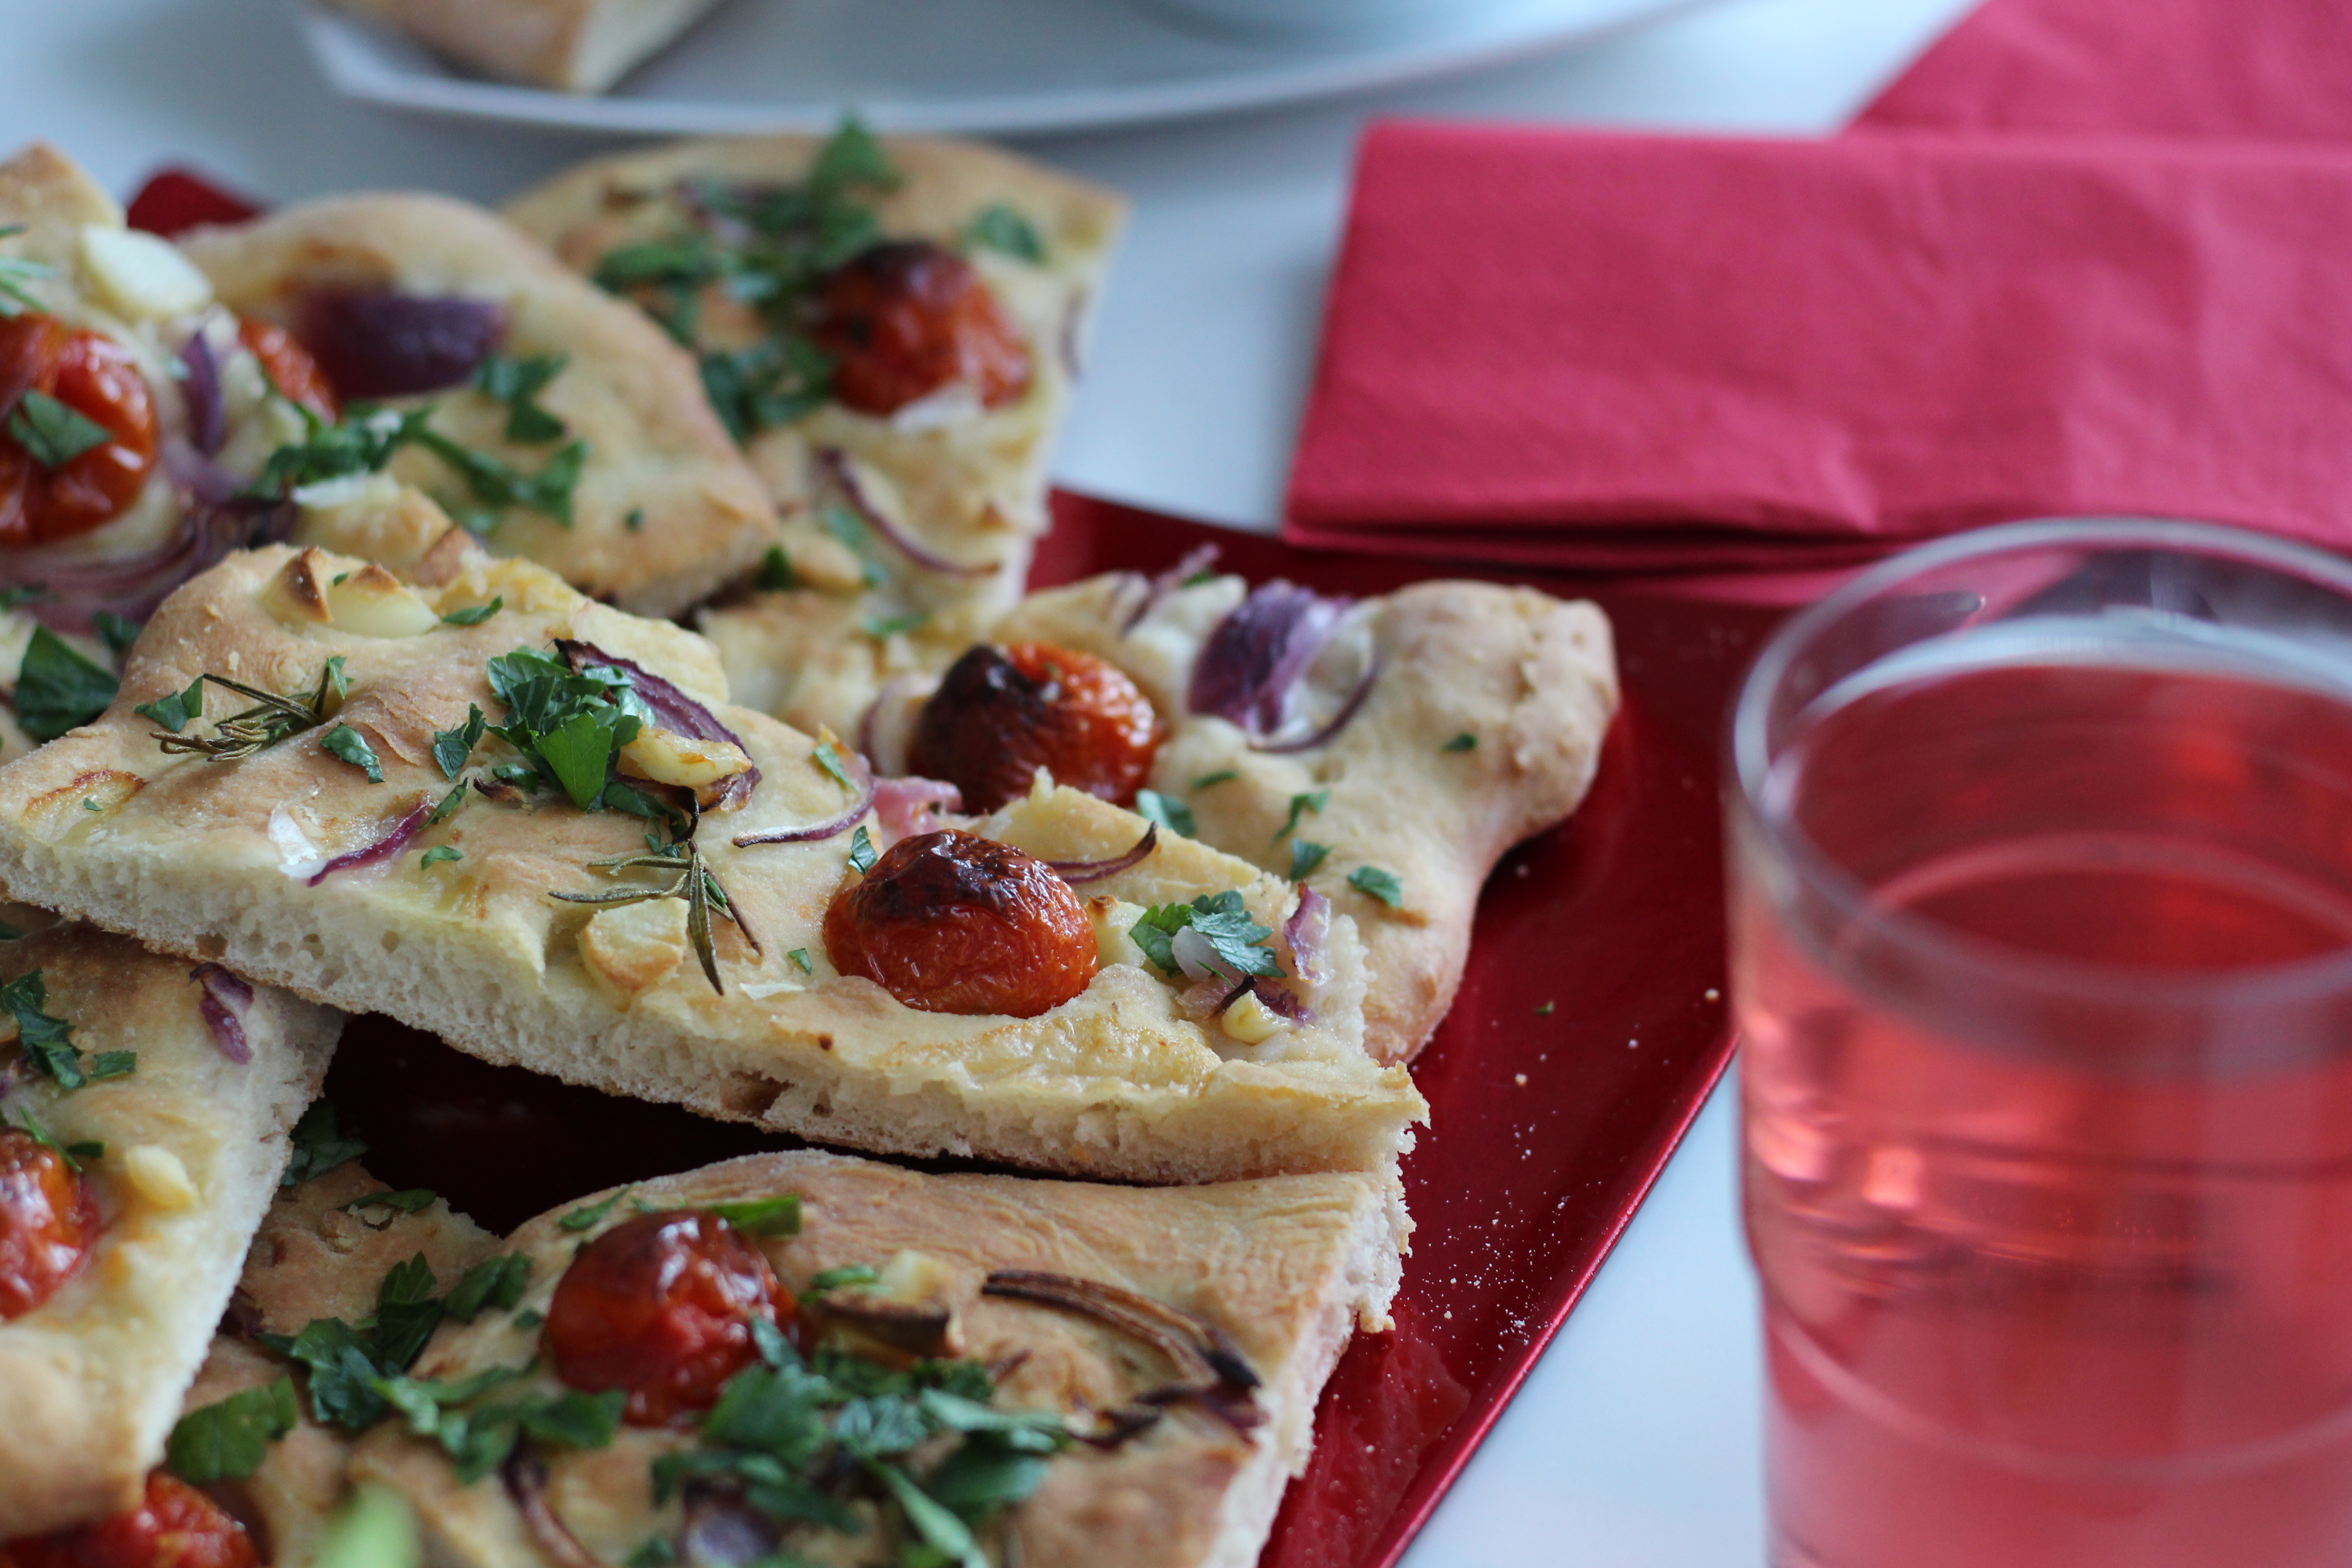 Vegan Focaccia, Dein Homespa, Vegan Food, Austria, (16)